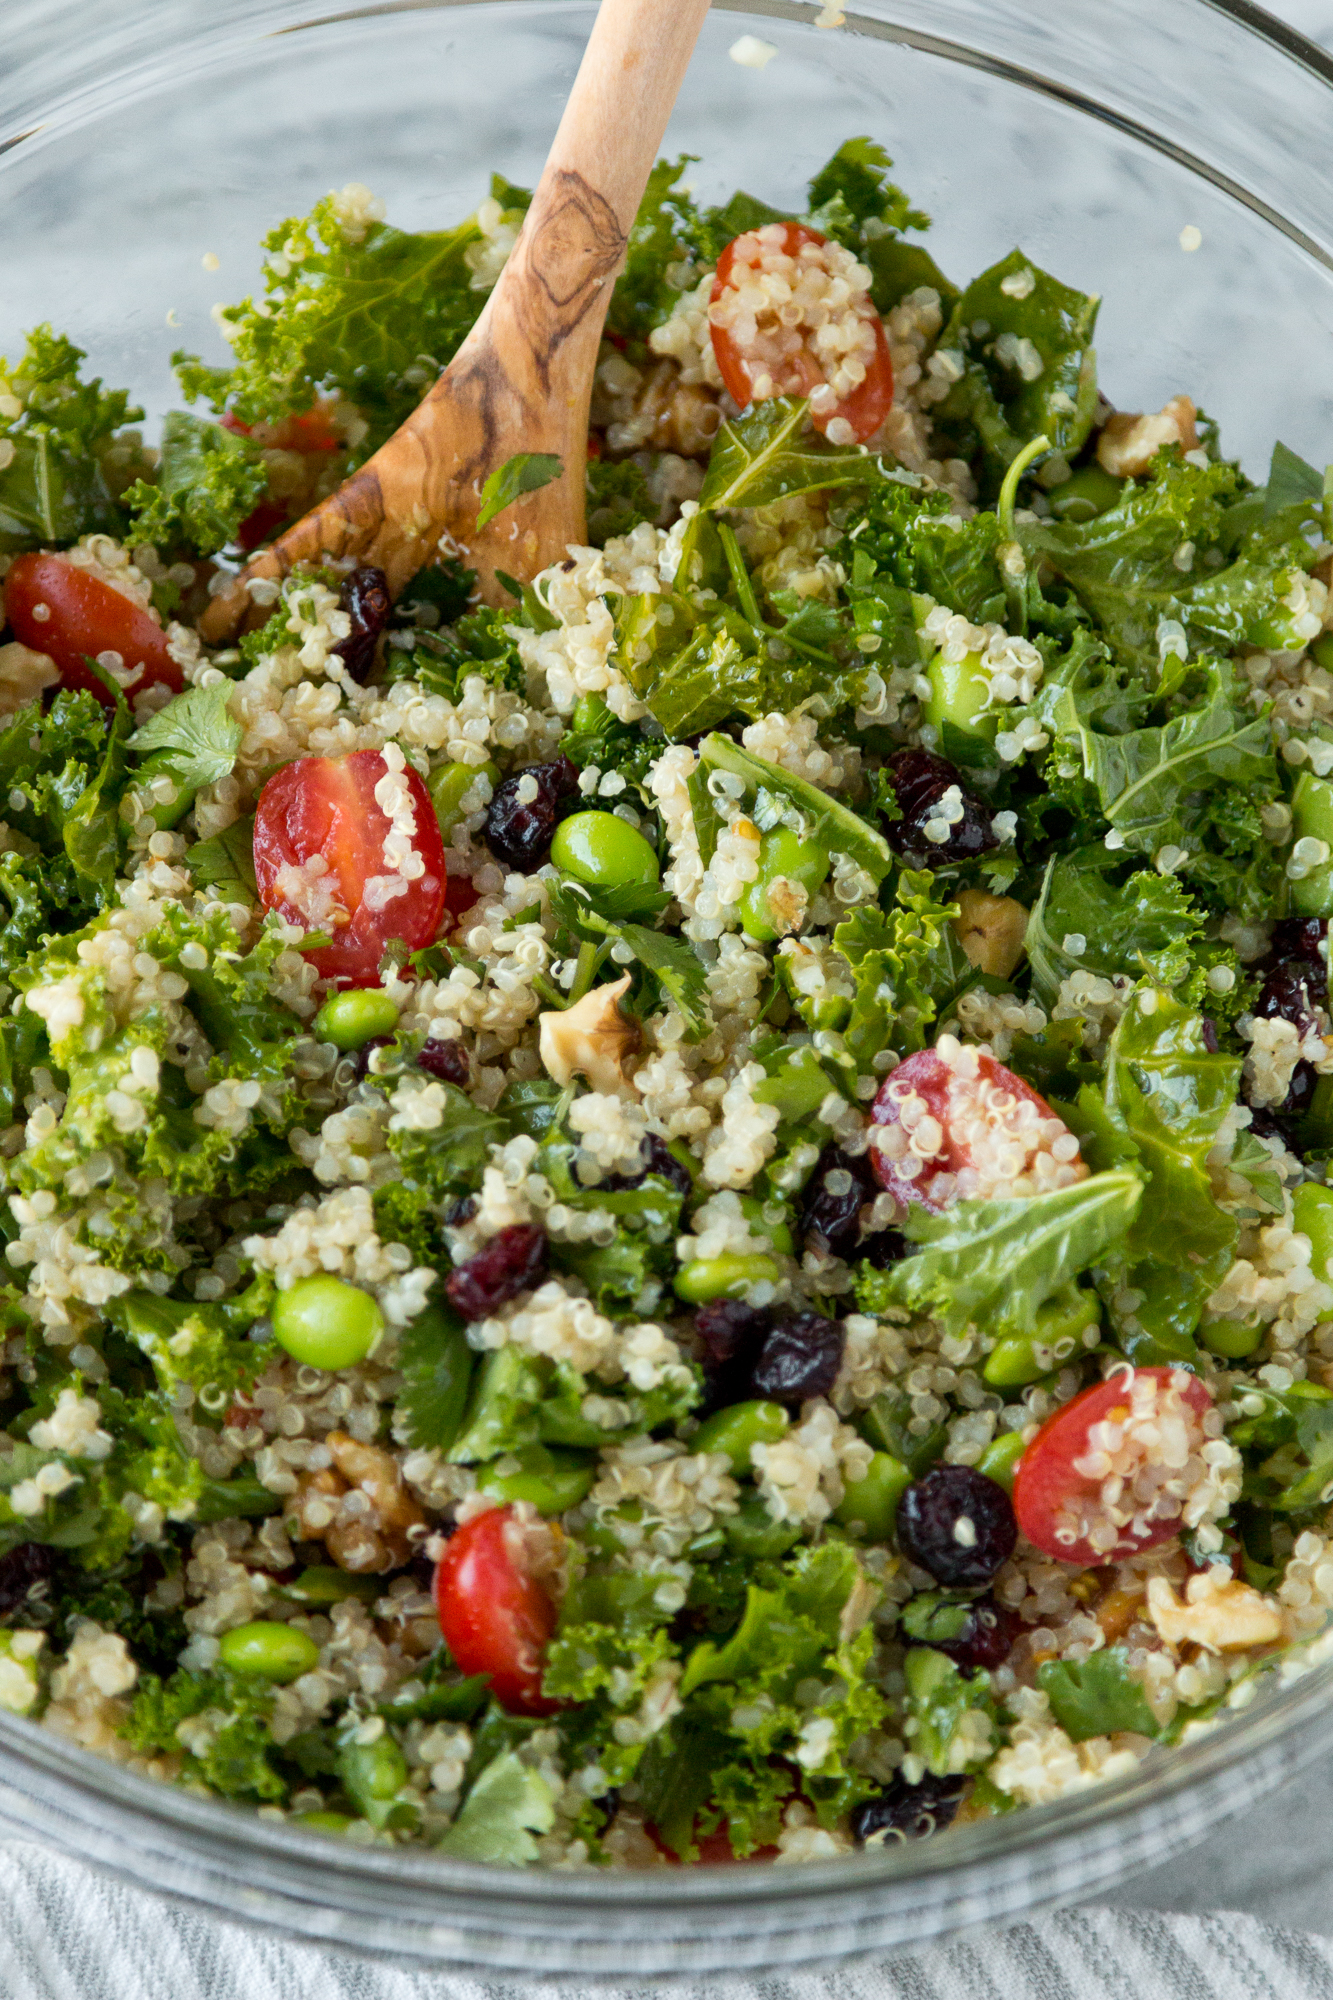 Edamame Quinoa Salad with Lemon Garlic Vinaigrette .jpg